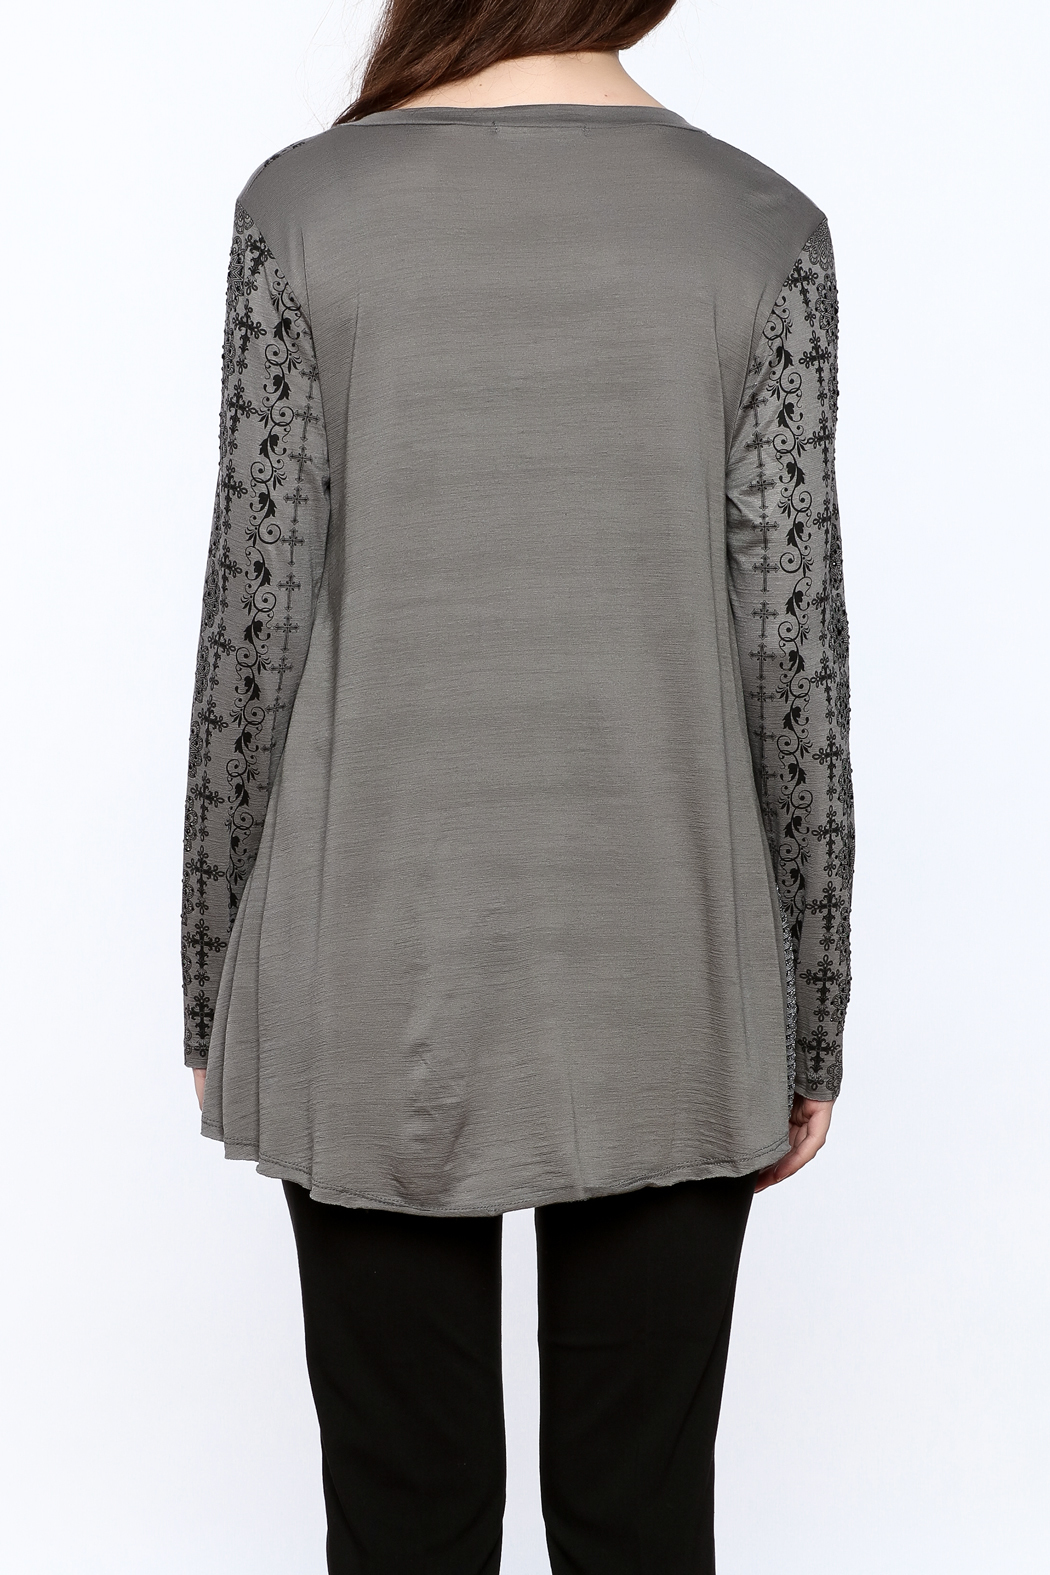 Voice Of California Loose Long Sleeve Top - Back Cropped Image